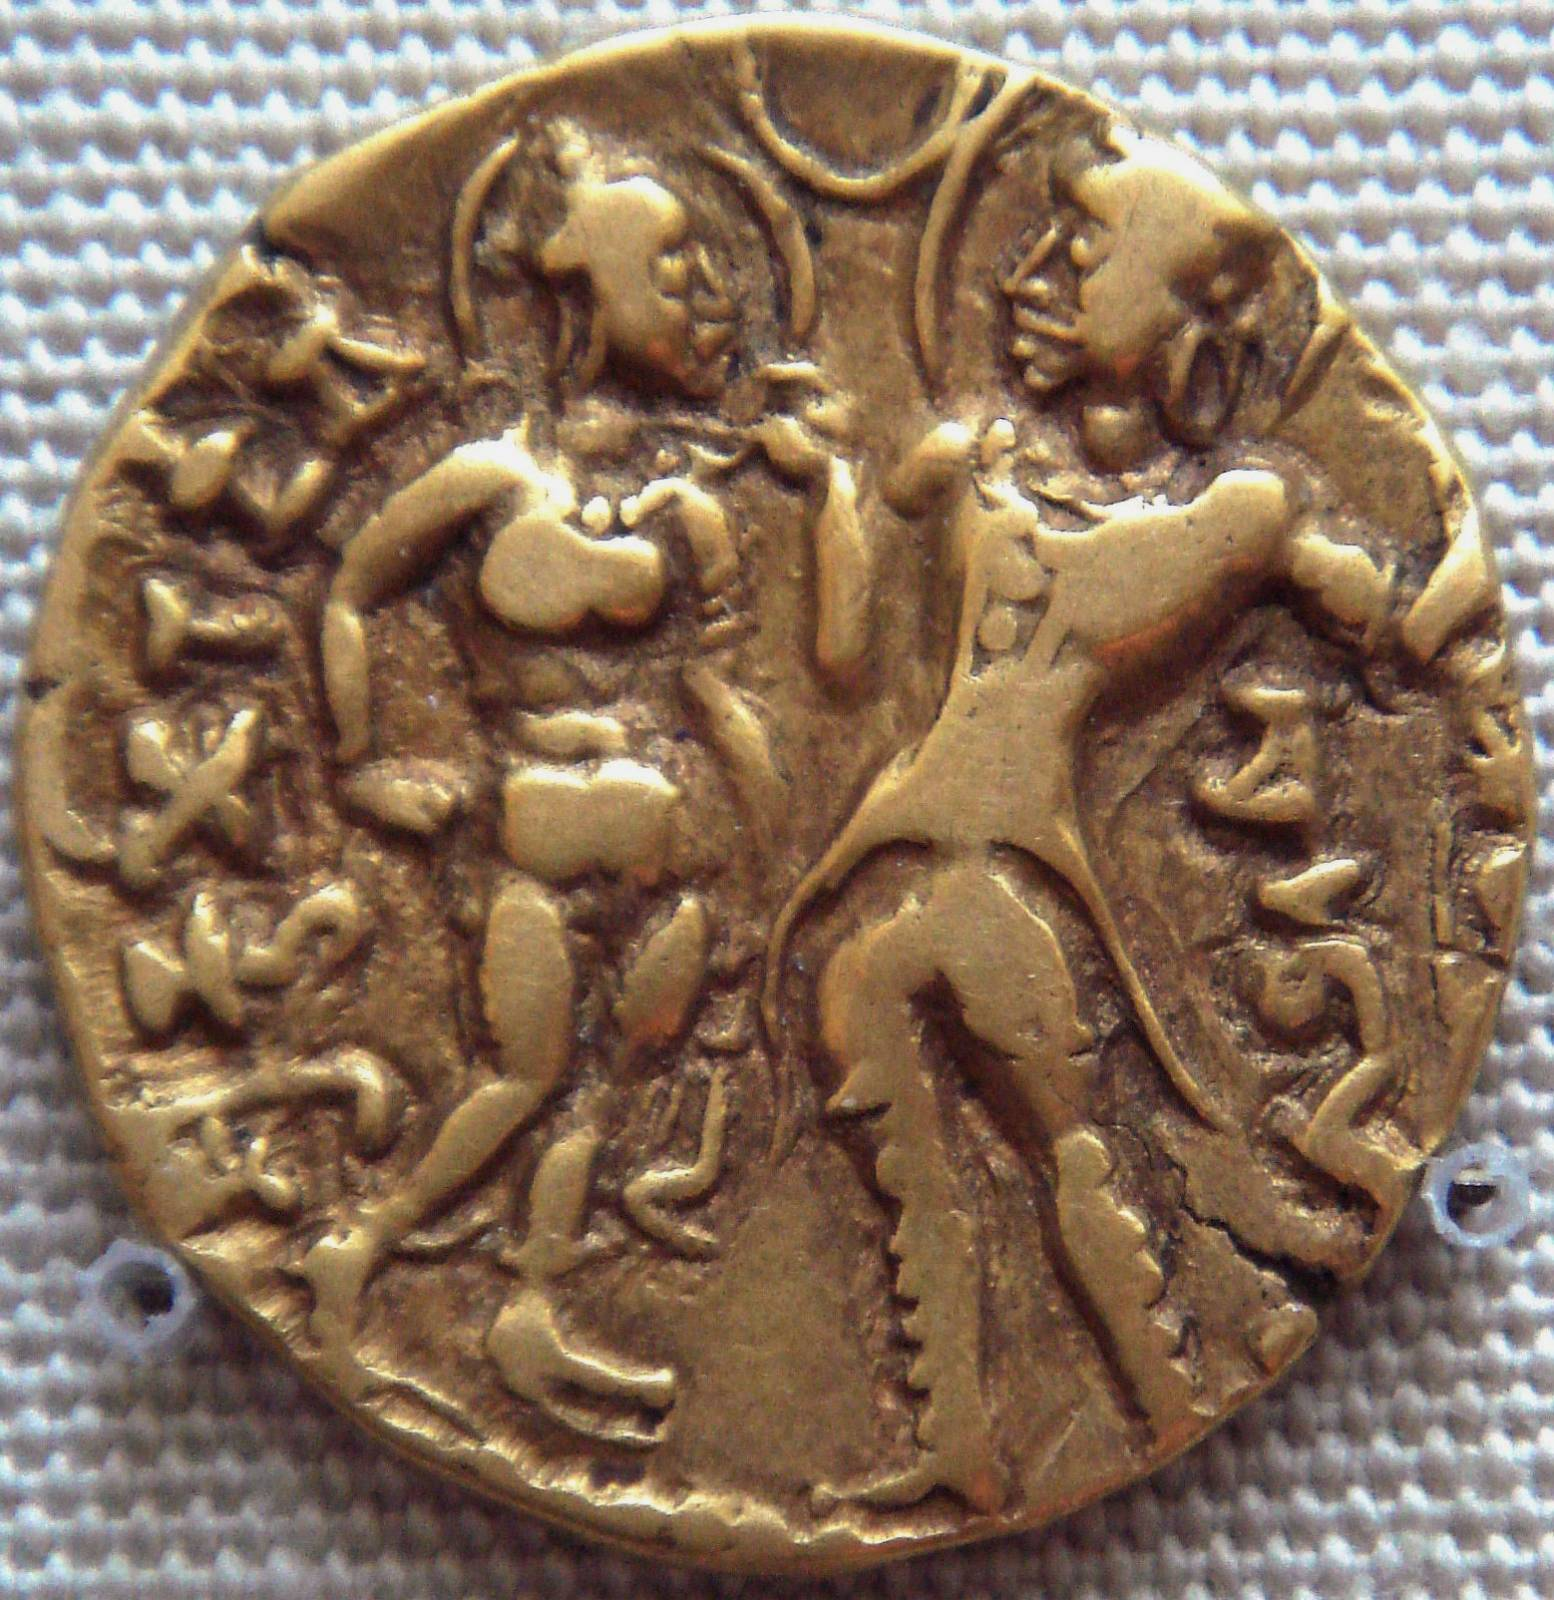 queen_kumaradevi_and_king_chandragupta_i.jpg